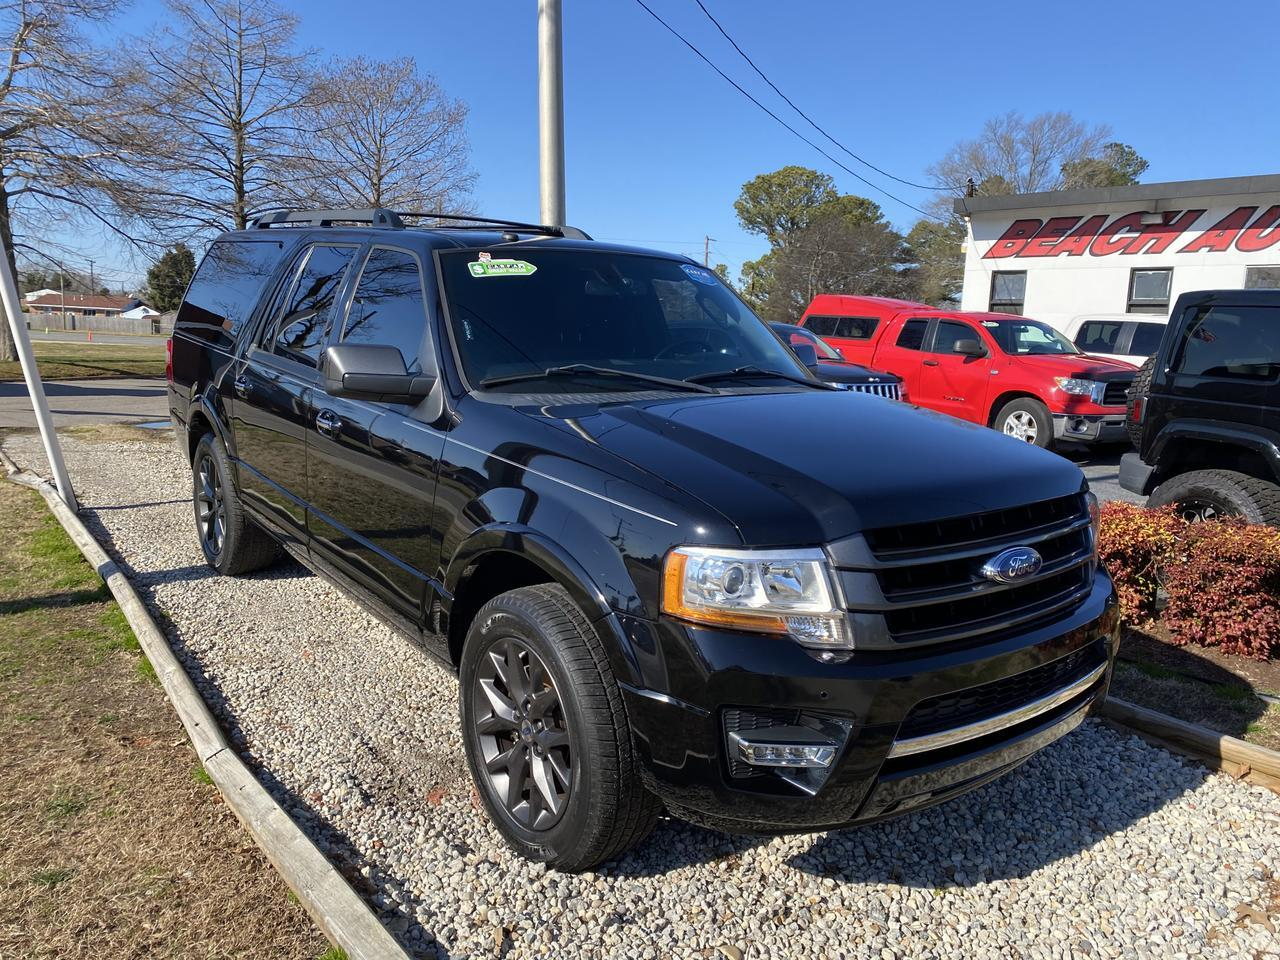 2017 FORD EXPEDITION EL LIMITED, WARRANTY, LEATHER, NAV, HEATED/COOLED SEATS, SUNROOF, 1 OWNER! Norfolk VA